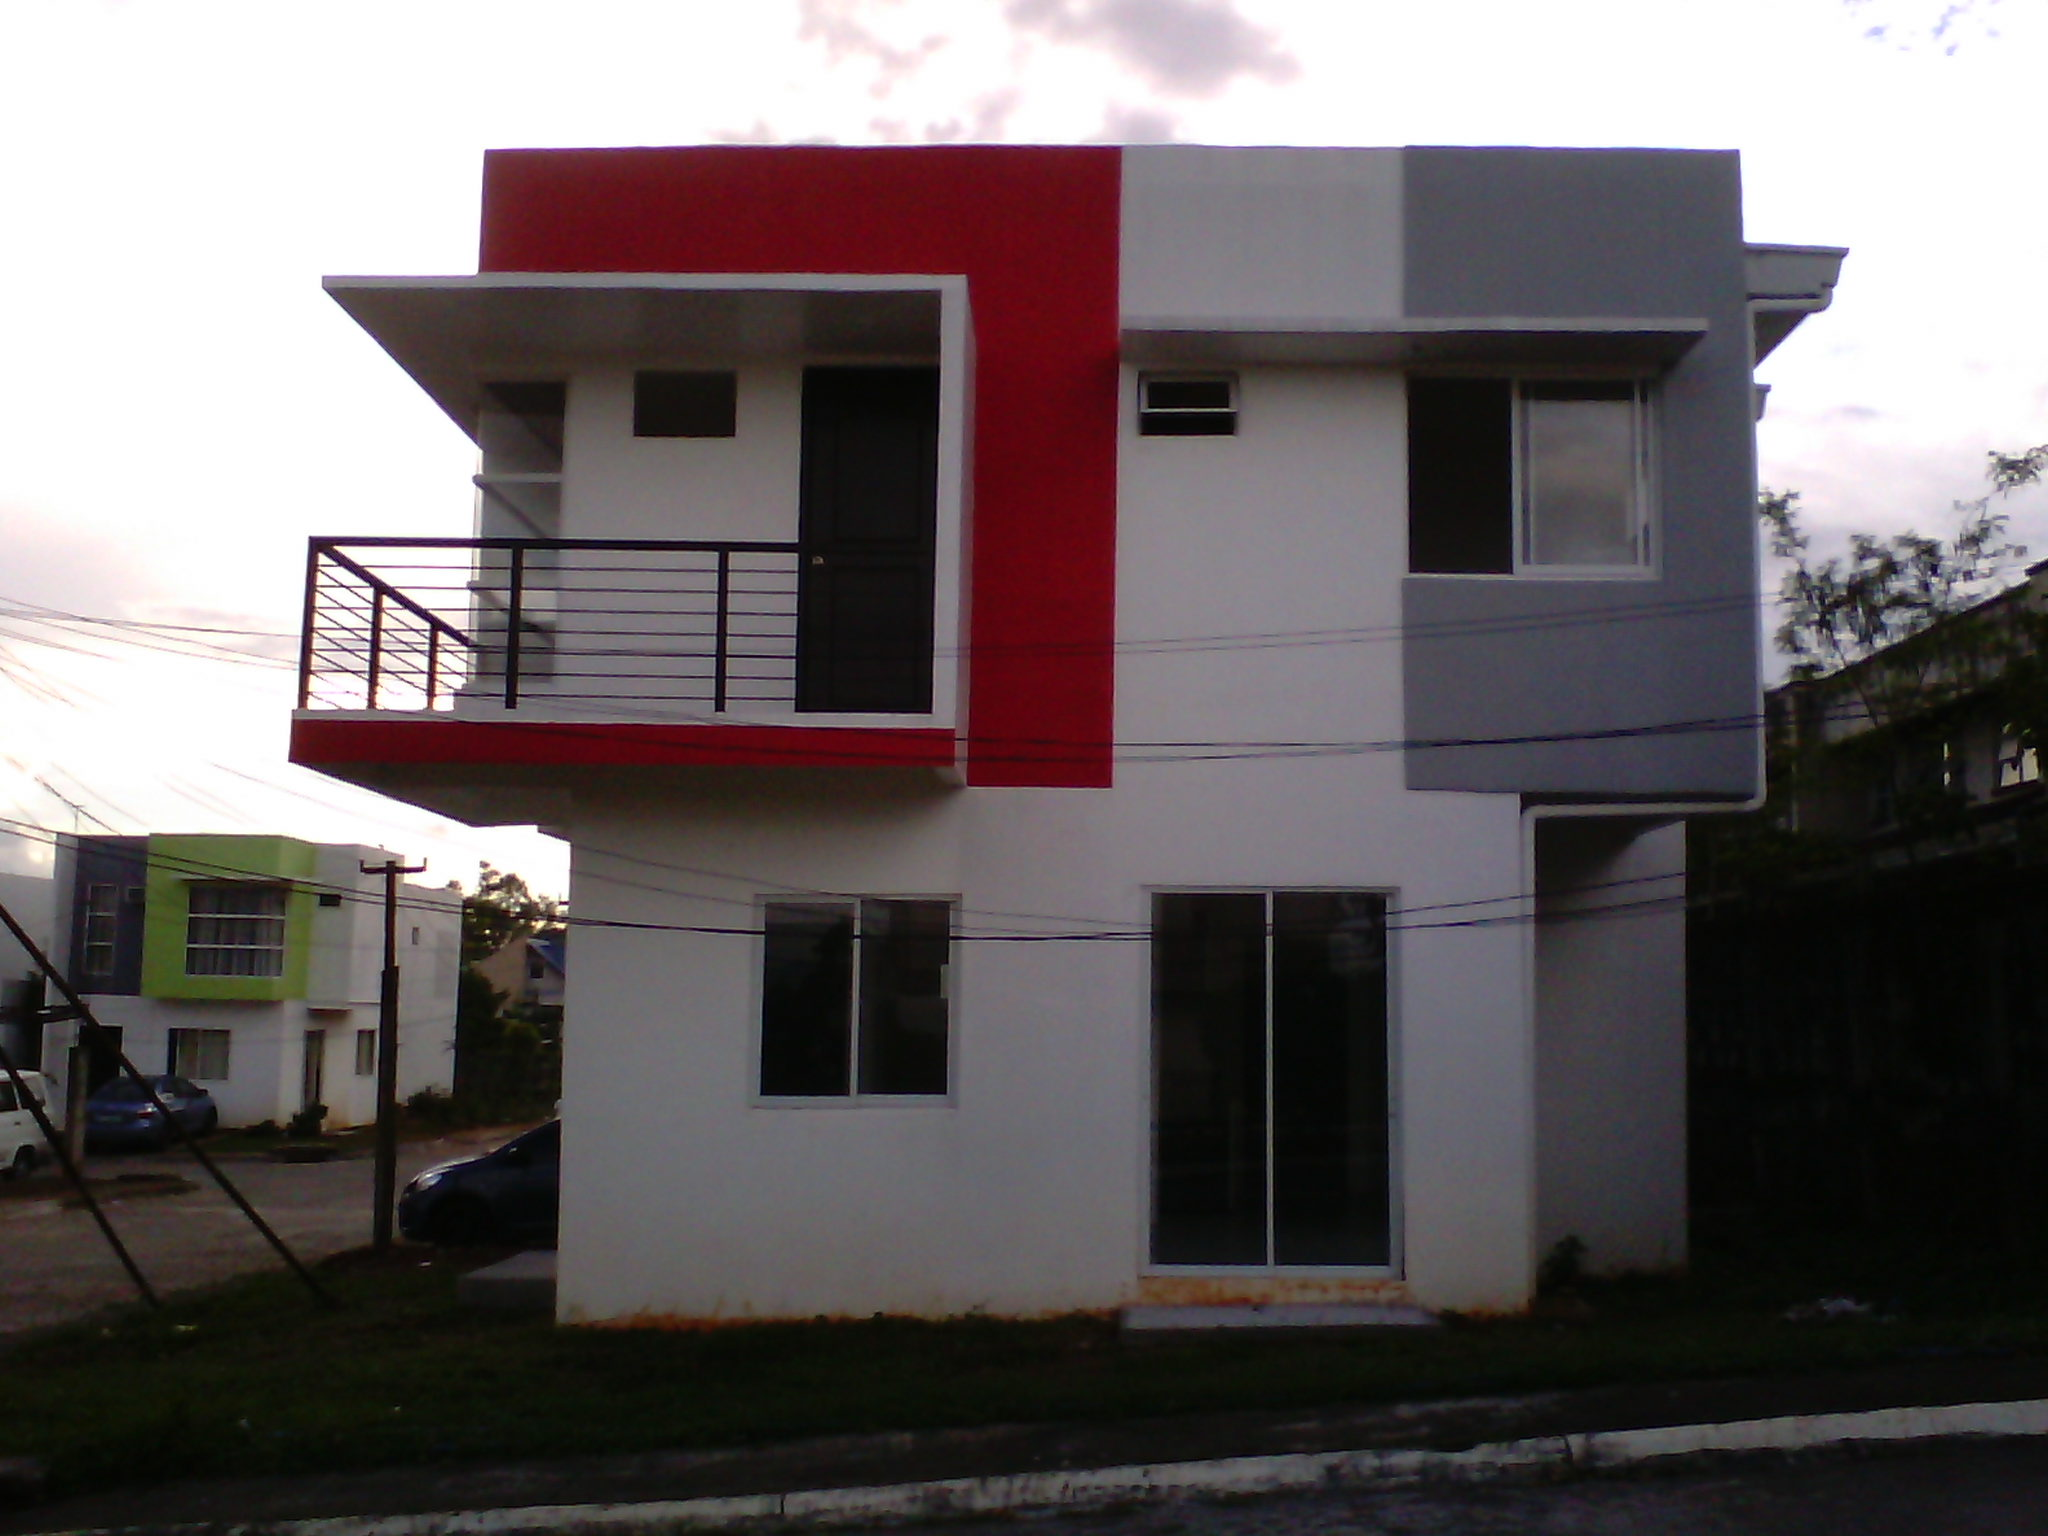 Single detached lot area 130 floor area 78 4br/3 t&b